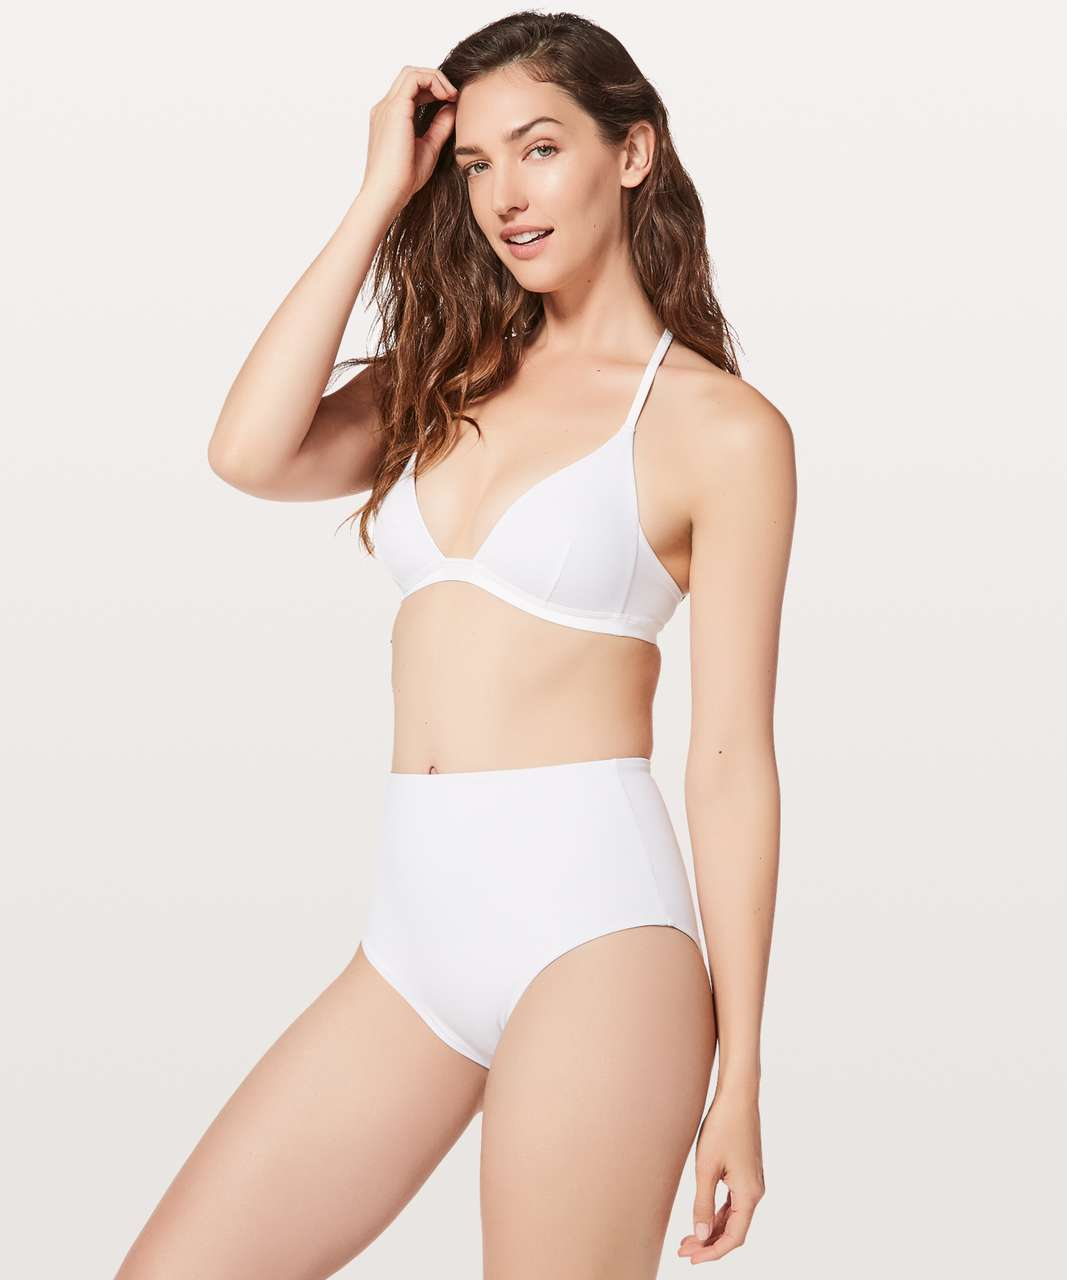 db9820df8 Lululemon Deep Sea Top - White - lulu fanatics